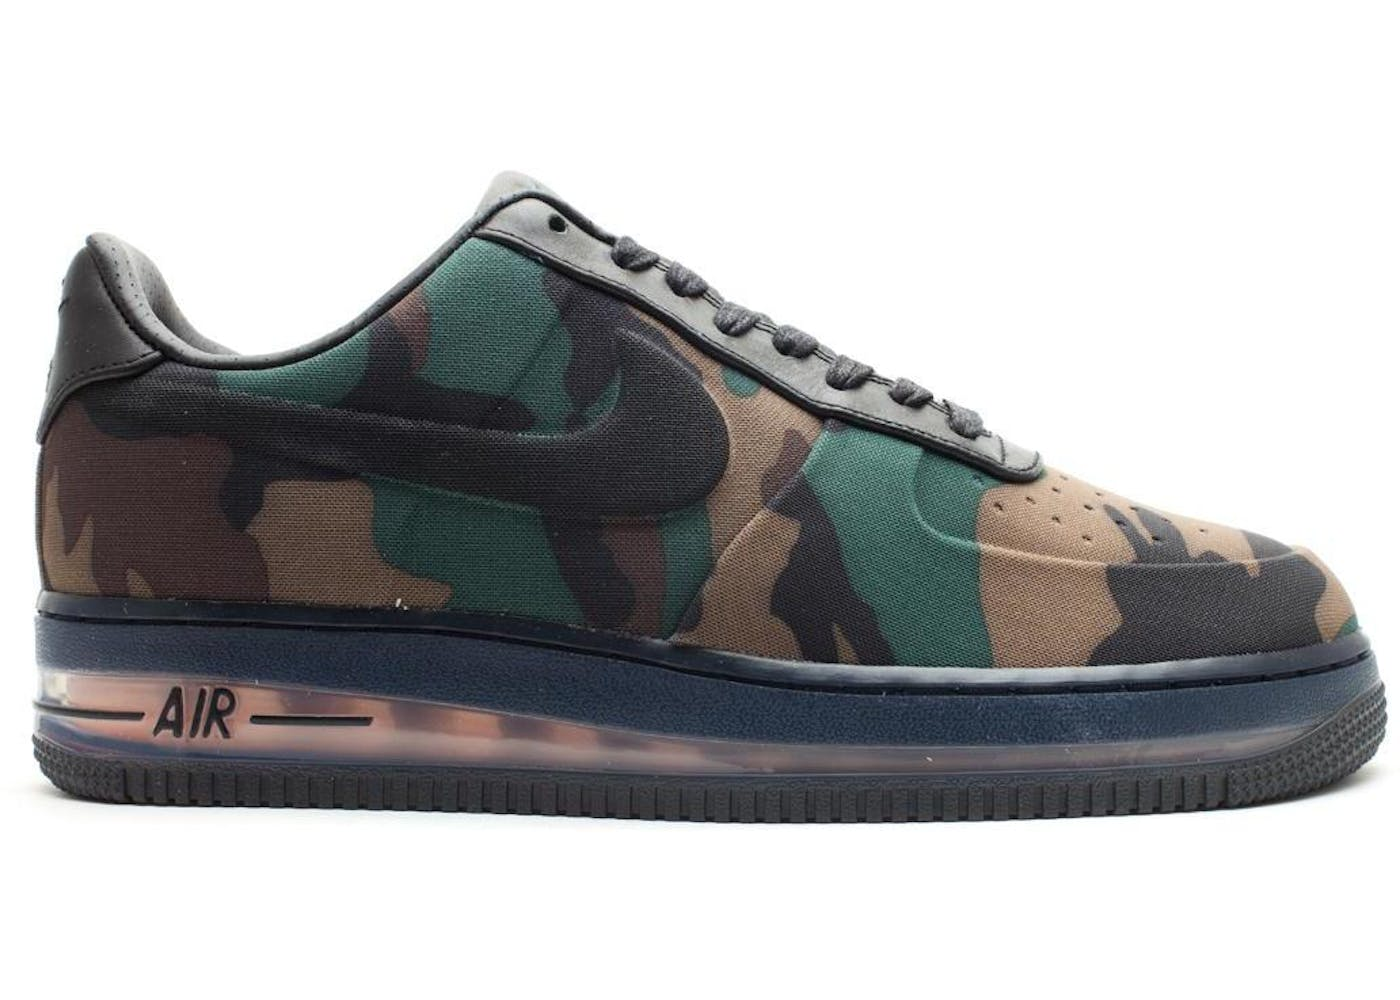 promo code 9b787 940db ... QS Camouflage at Millenium Shoes Air Force 1 Low Max Air VT Camo ...